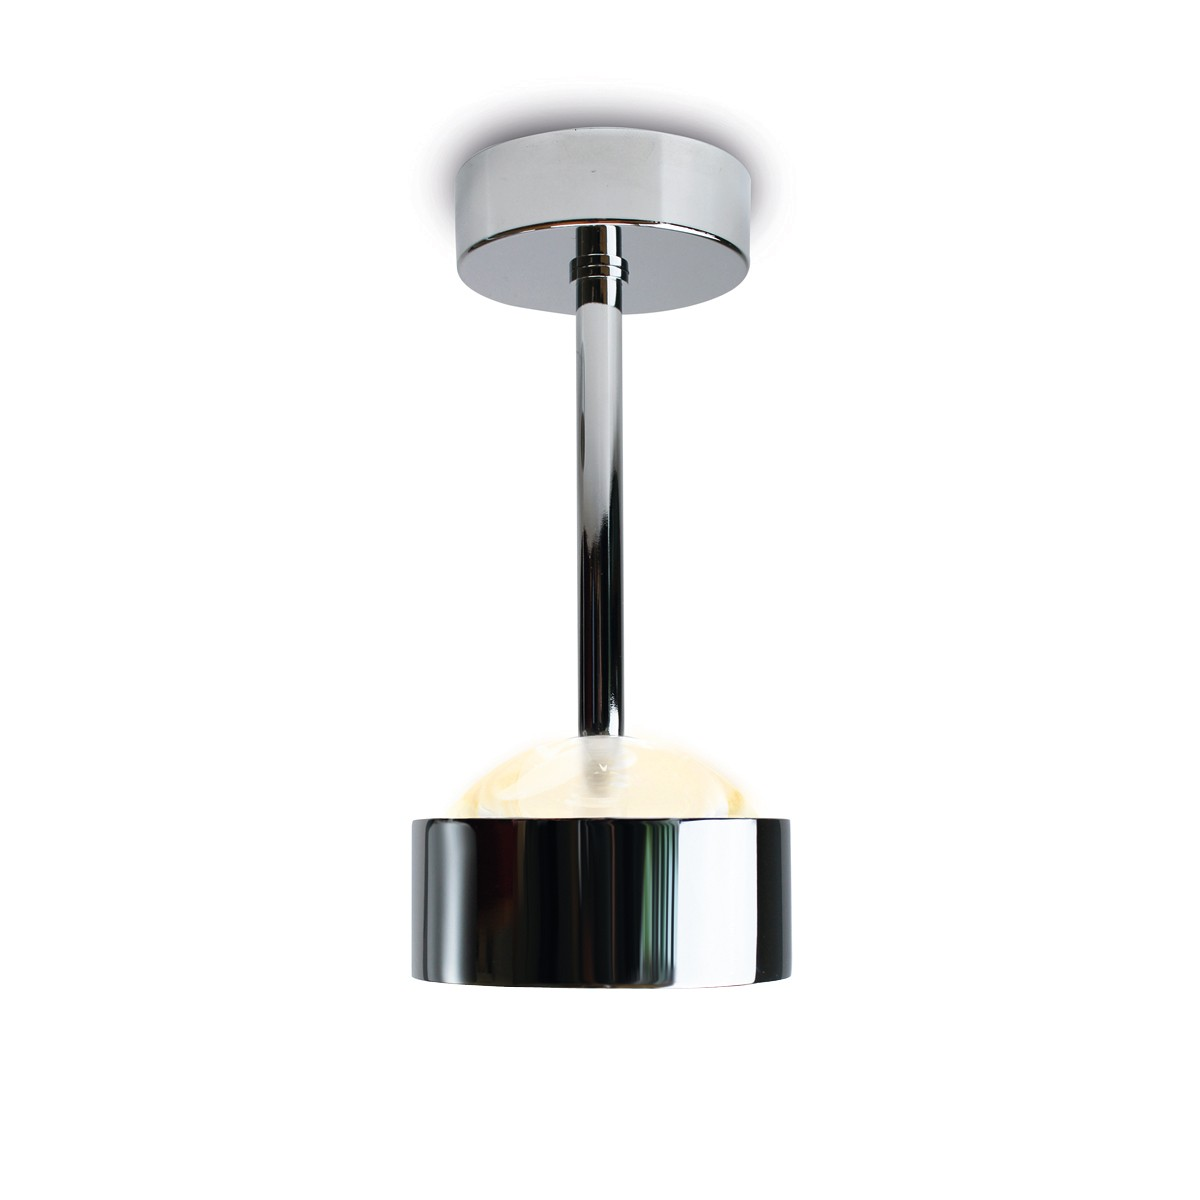 Top Light Puk Eye Ceiling LED Deckenleuchte, Chrom